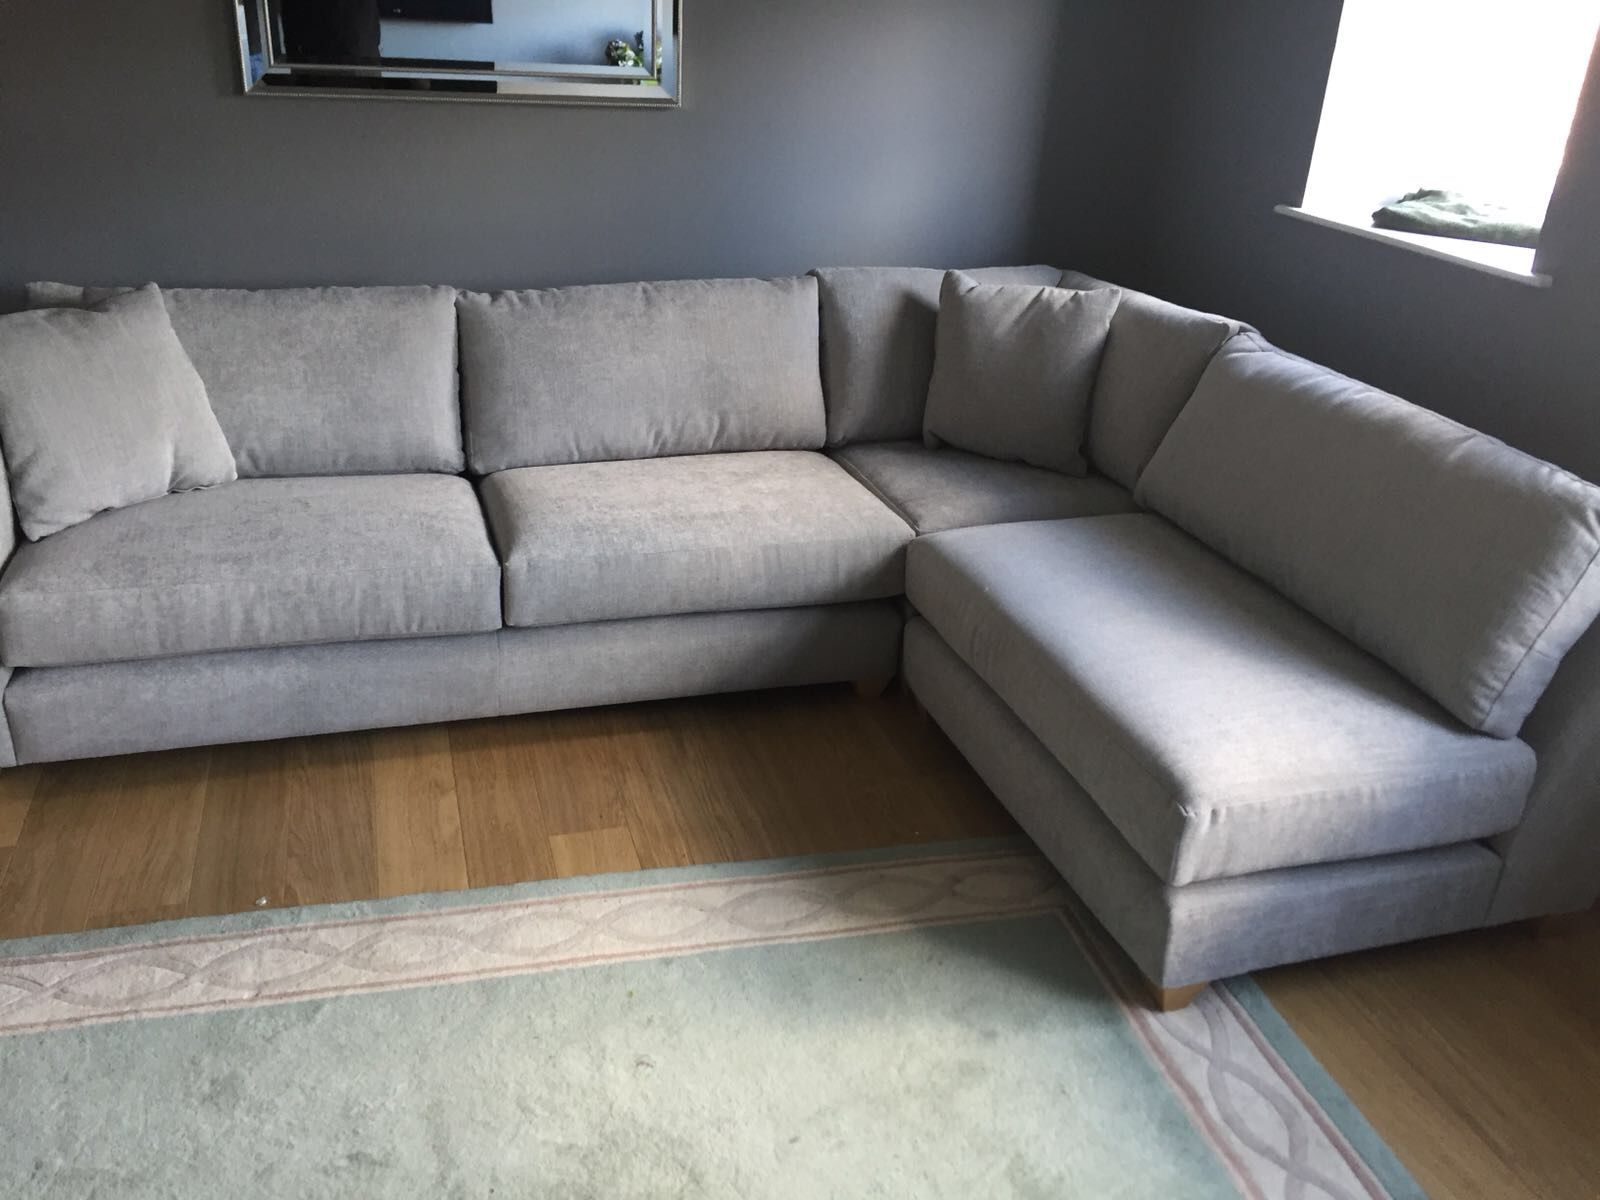 Mapperley Left Hand Facing 3 Piece Corner Sofa 285 Cm X 200 Cm No Arm On The Right Hand Section In J Brown Porto 23 Mist Corner Sofa No Arms Sofa Corner Sofa